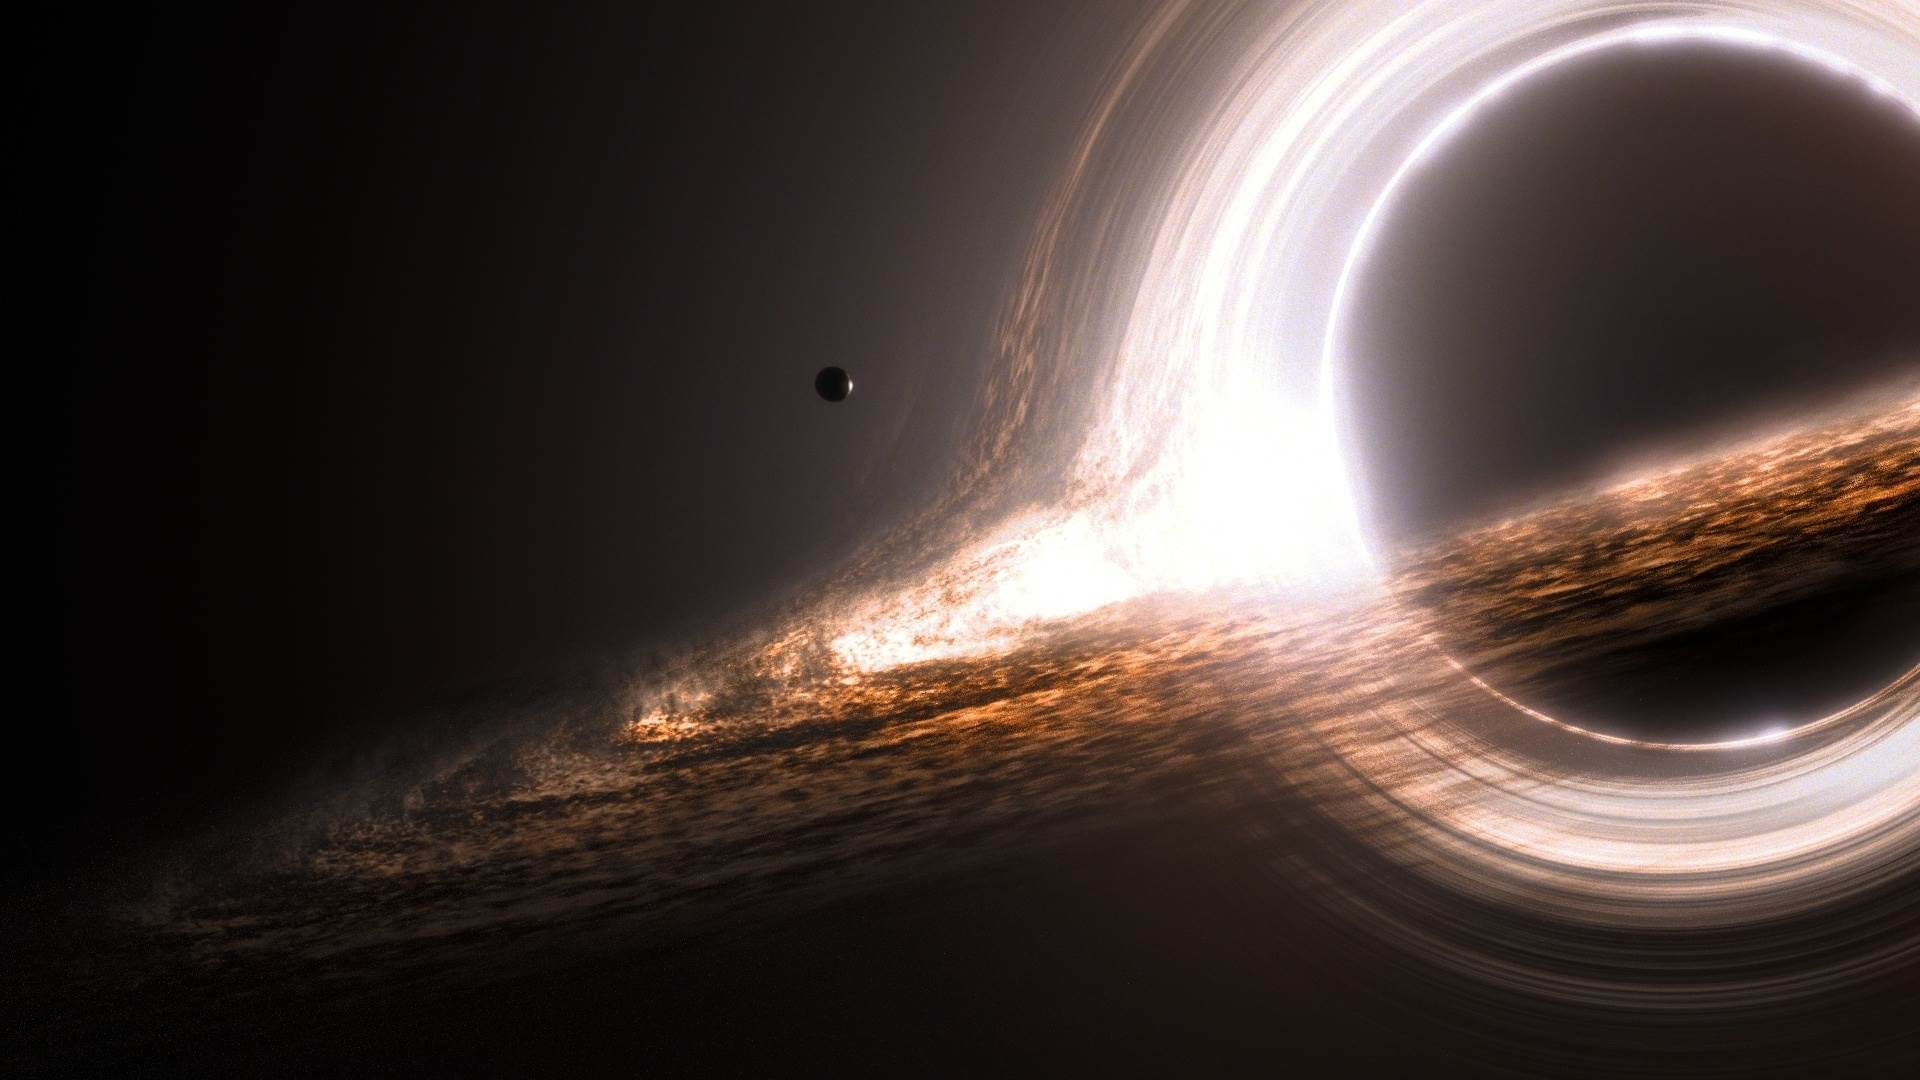 The Black Hole from the movie Interstellar